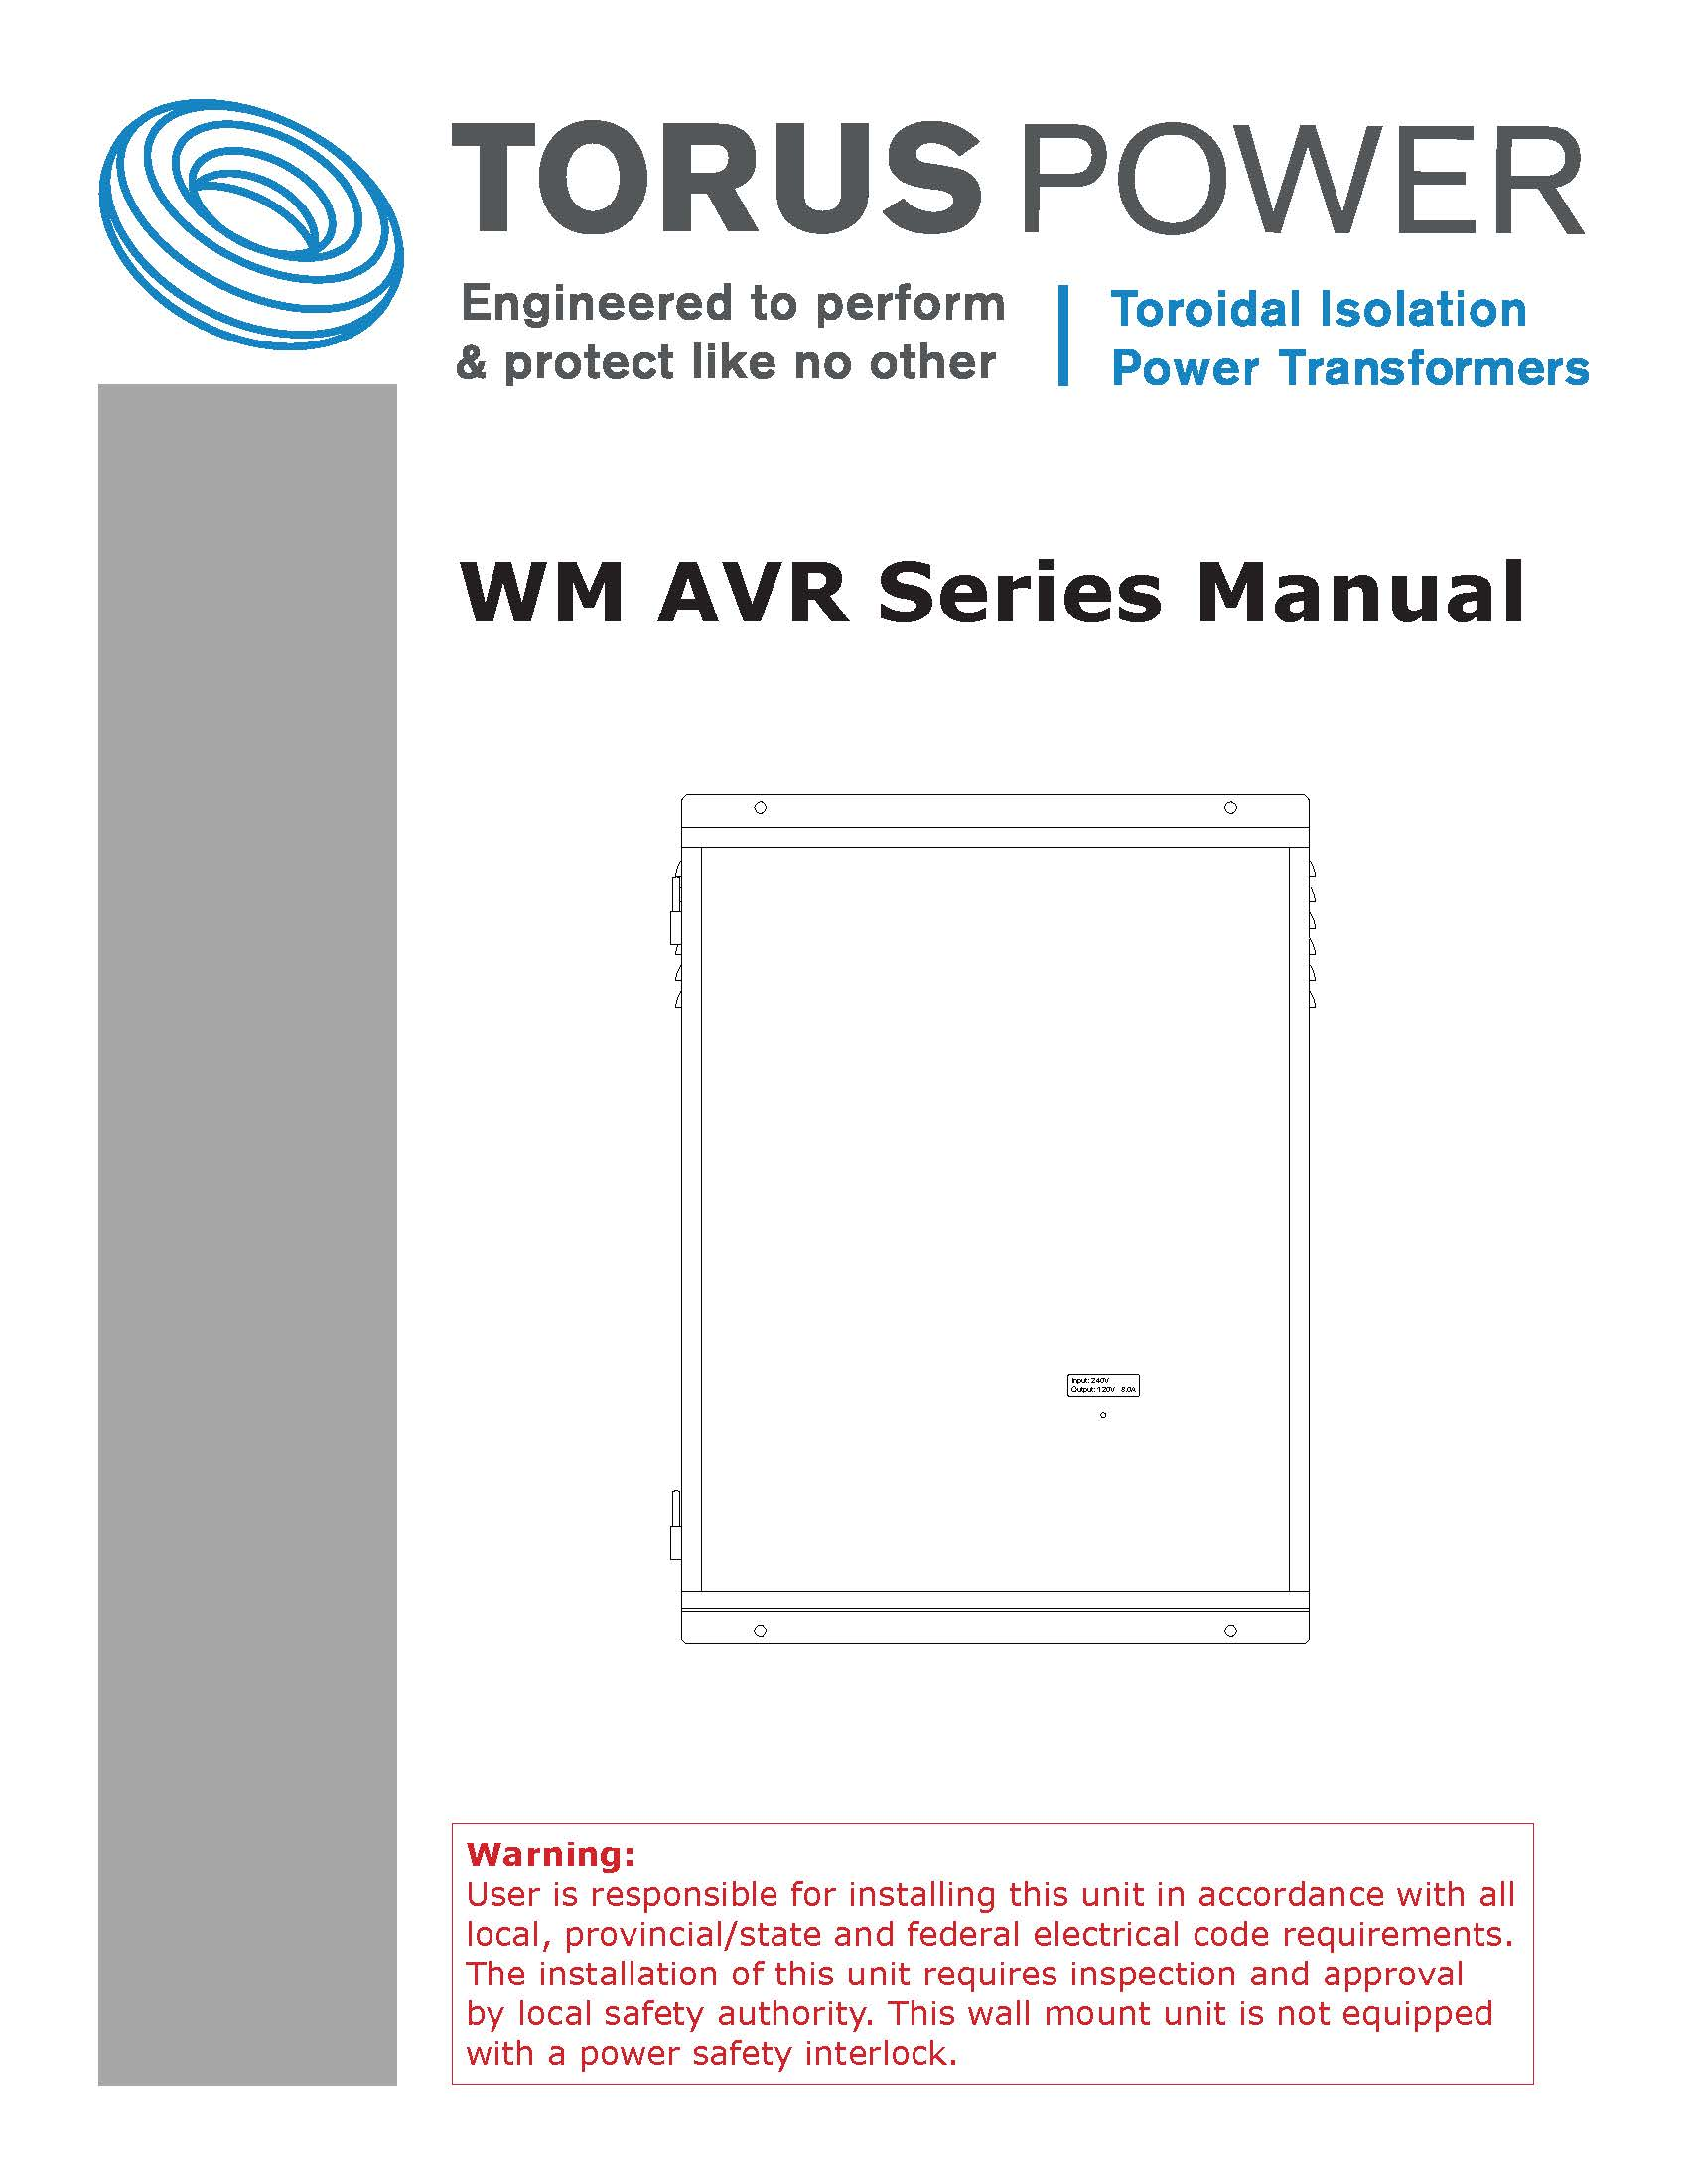 WM AVR Manual